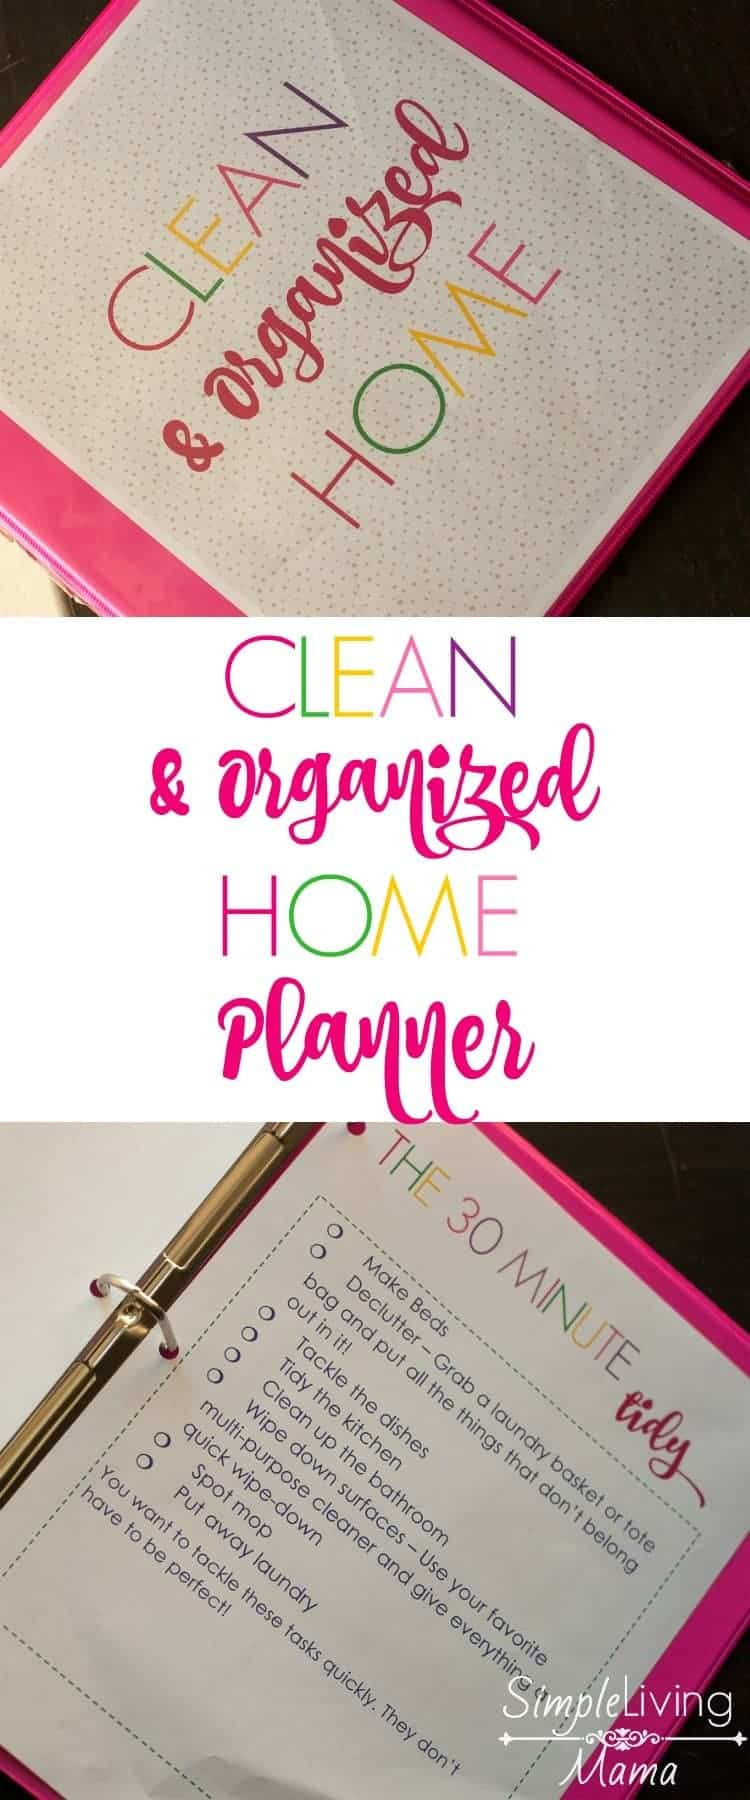 The clean and organized home planner